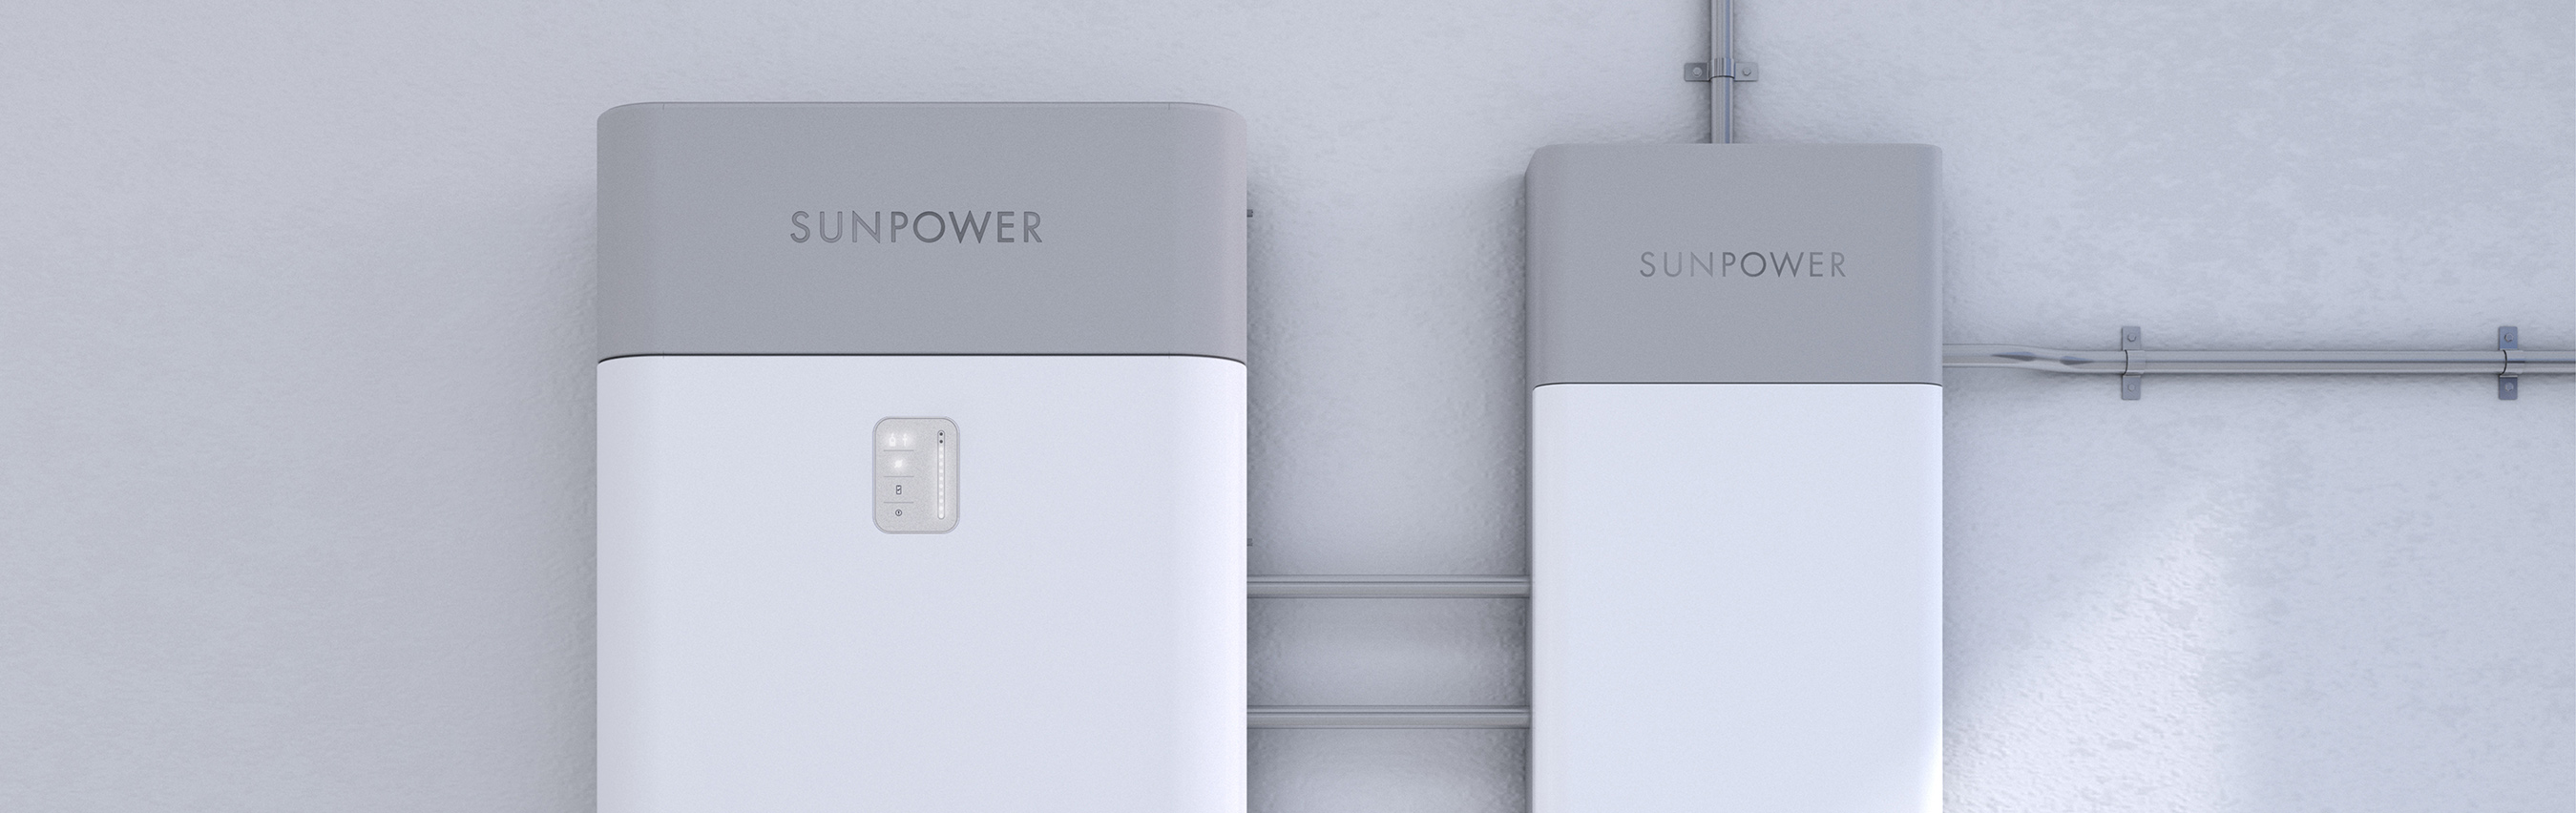 SunPower Hero